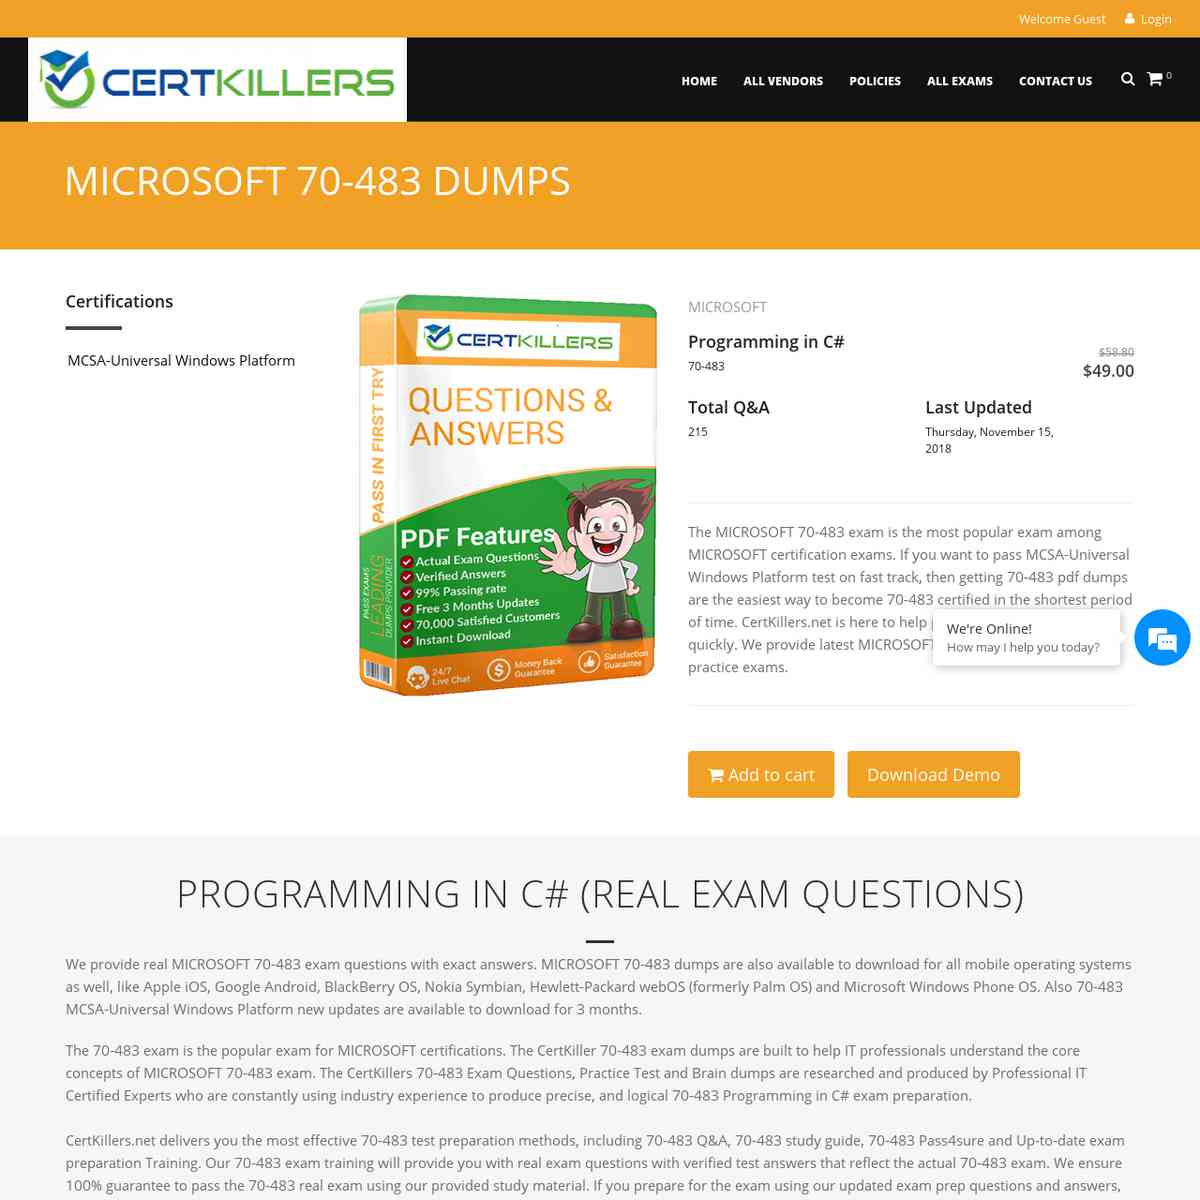 Only CertKillers.net 70-483 bootcamp are needed to pass | pdf download | exam prep